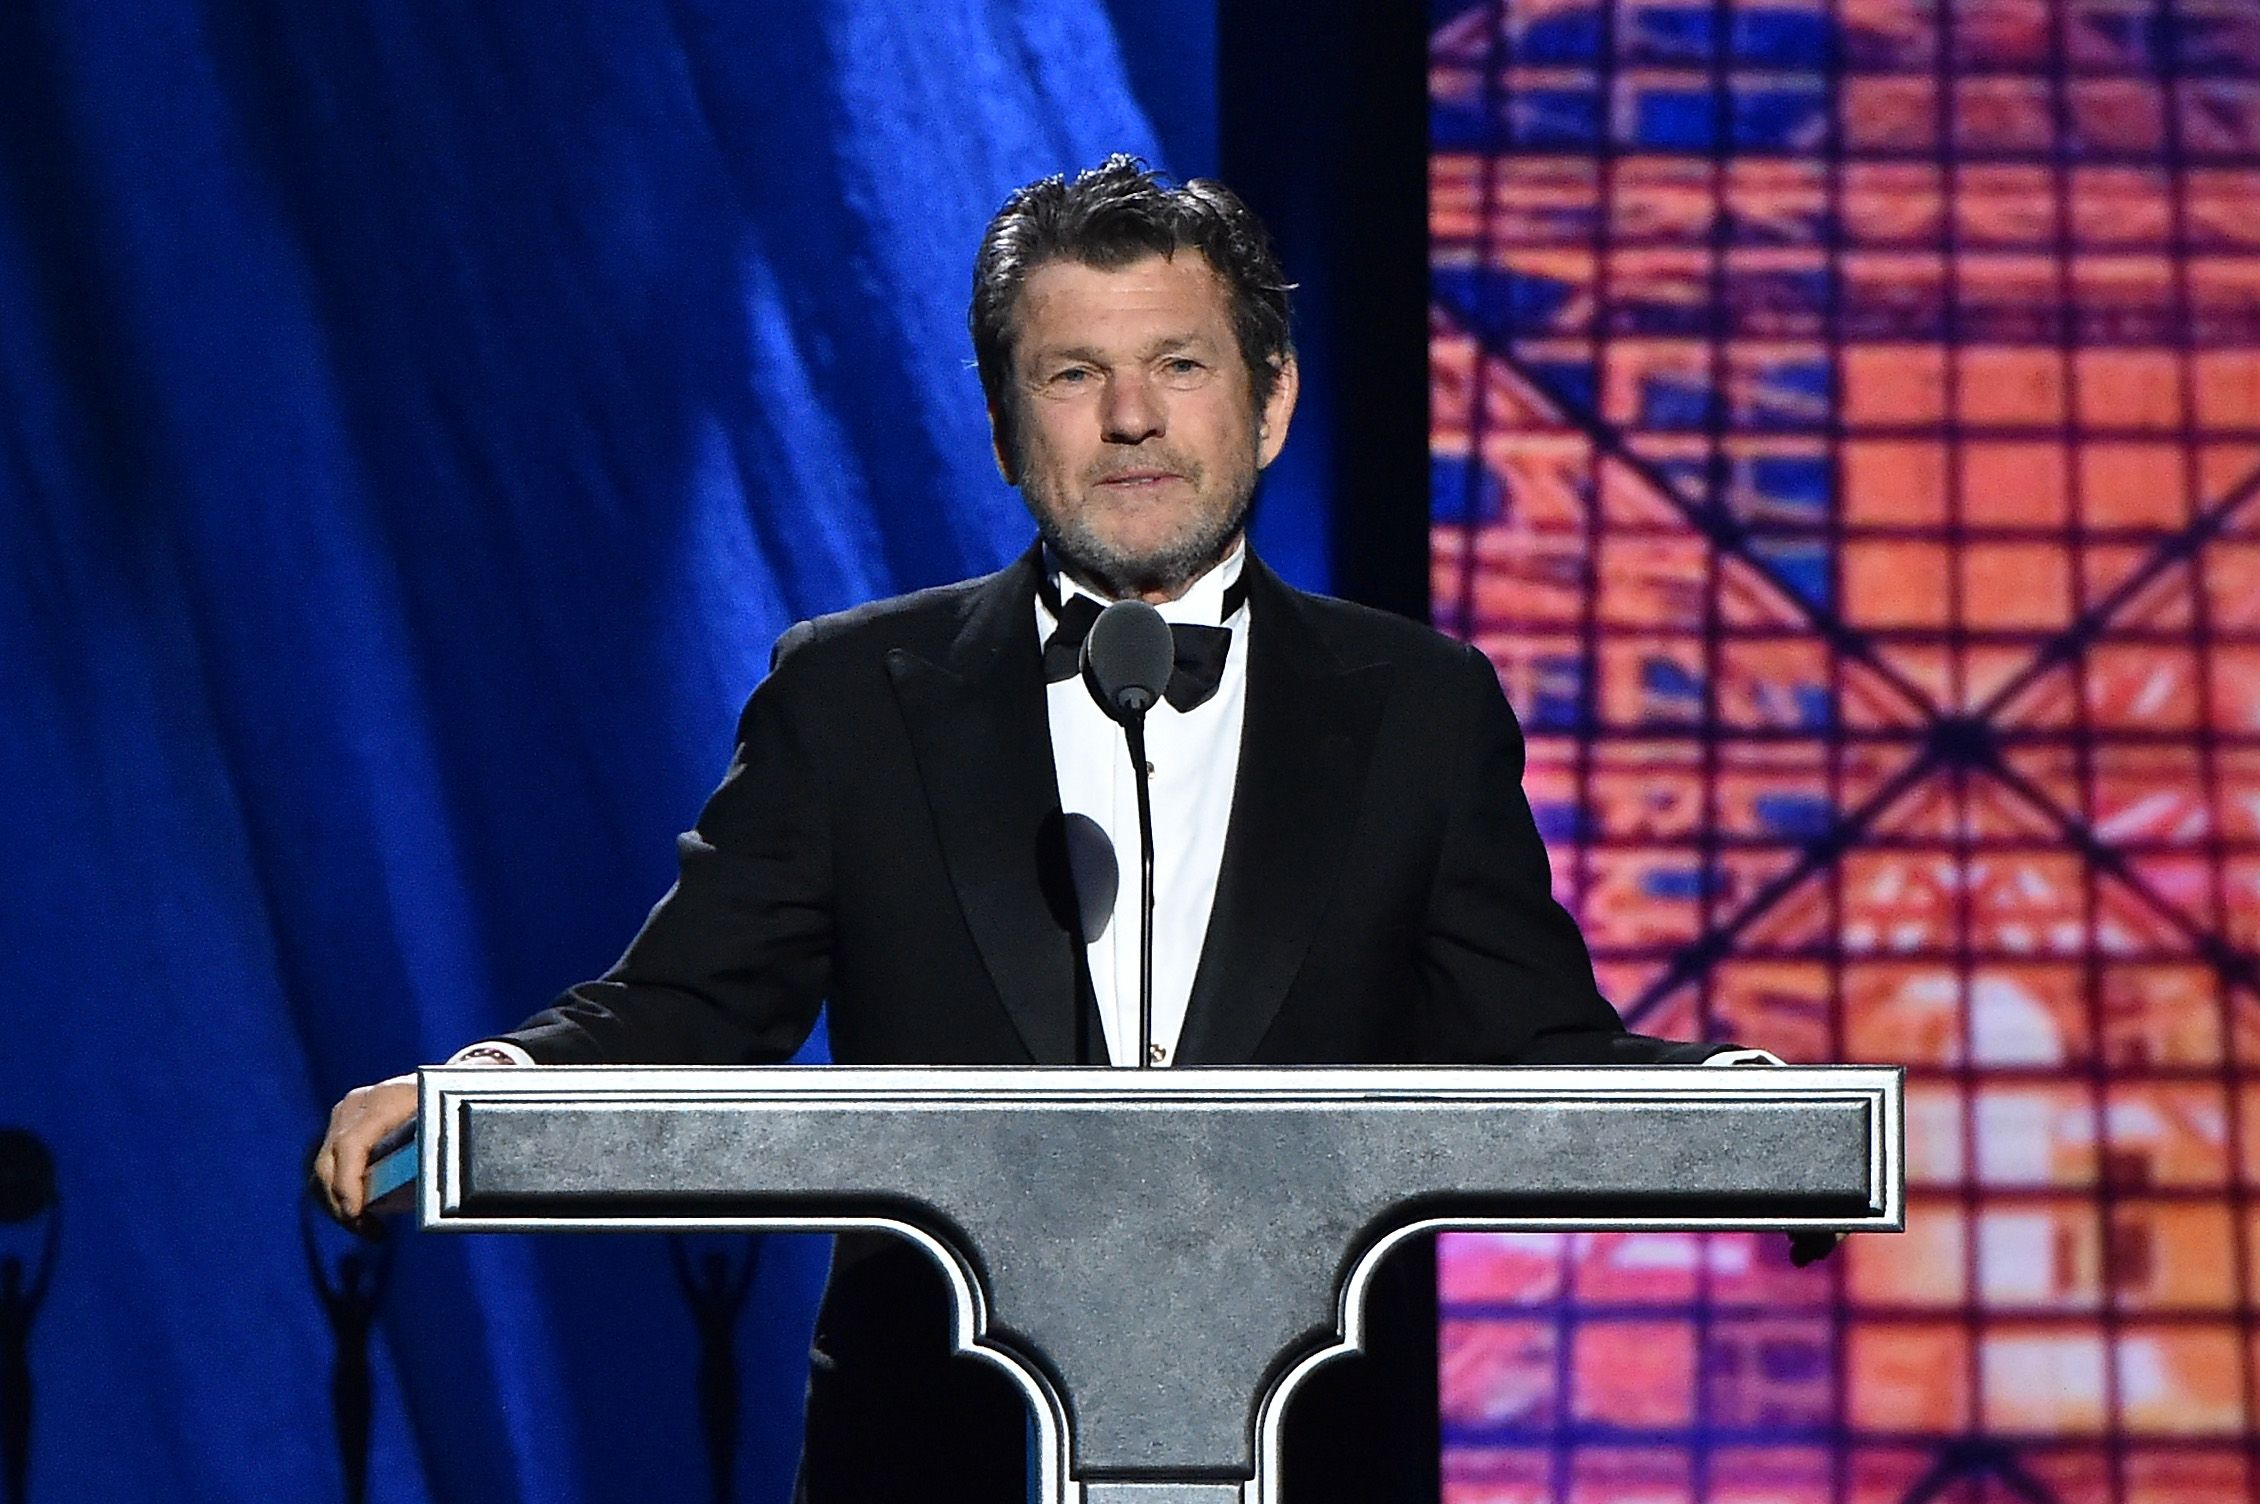 10 things we learned about 'Rolling Stone' founder Jann Wenner from the 'Sticky Fingers' biography